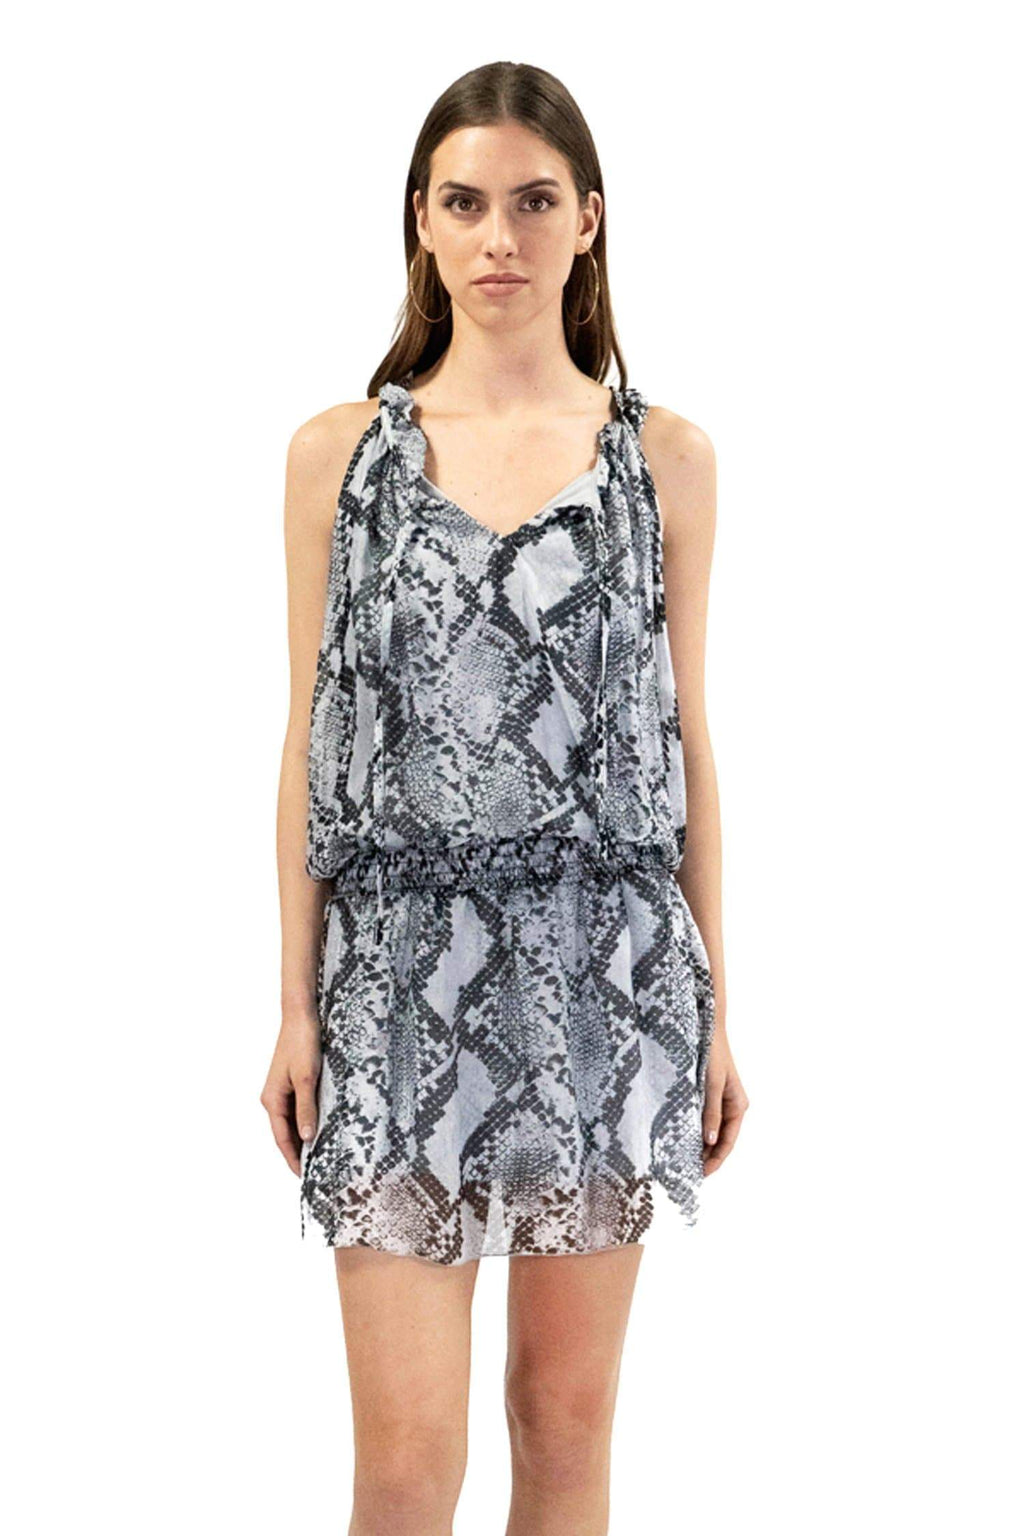 shop-sofia SOFIA GREY SNAKE PRINT DRESS Sofia Collections Italian Silk Linen Satin